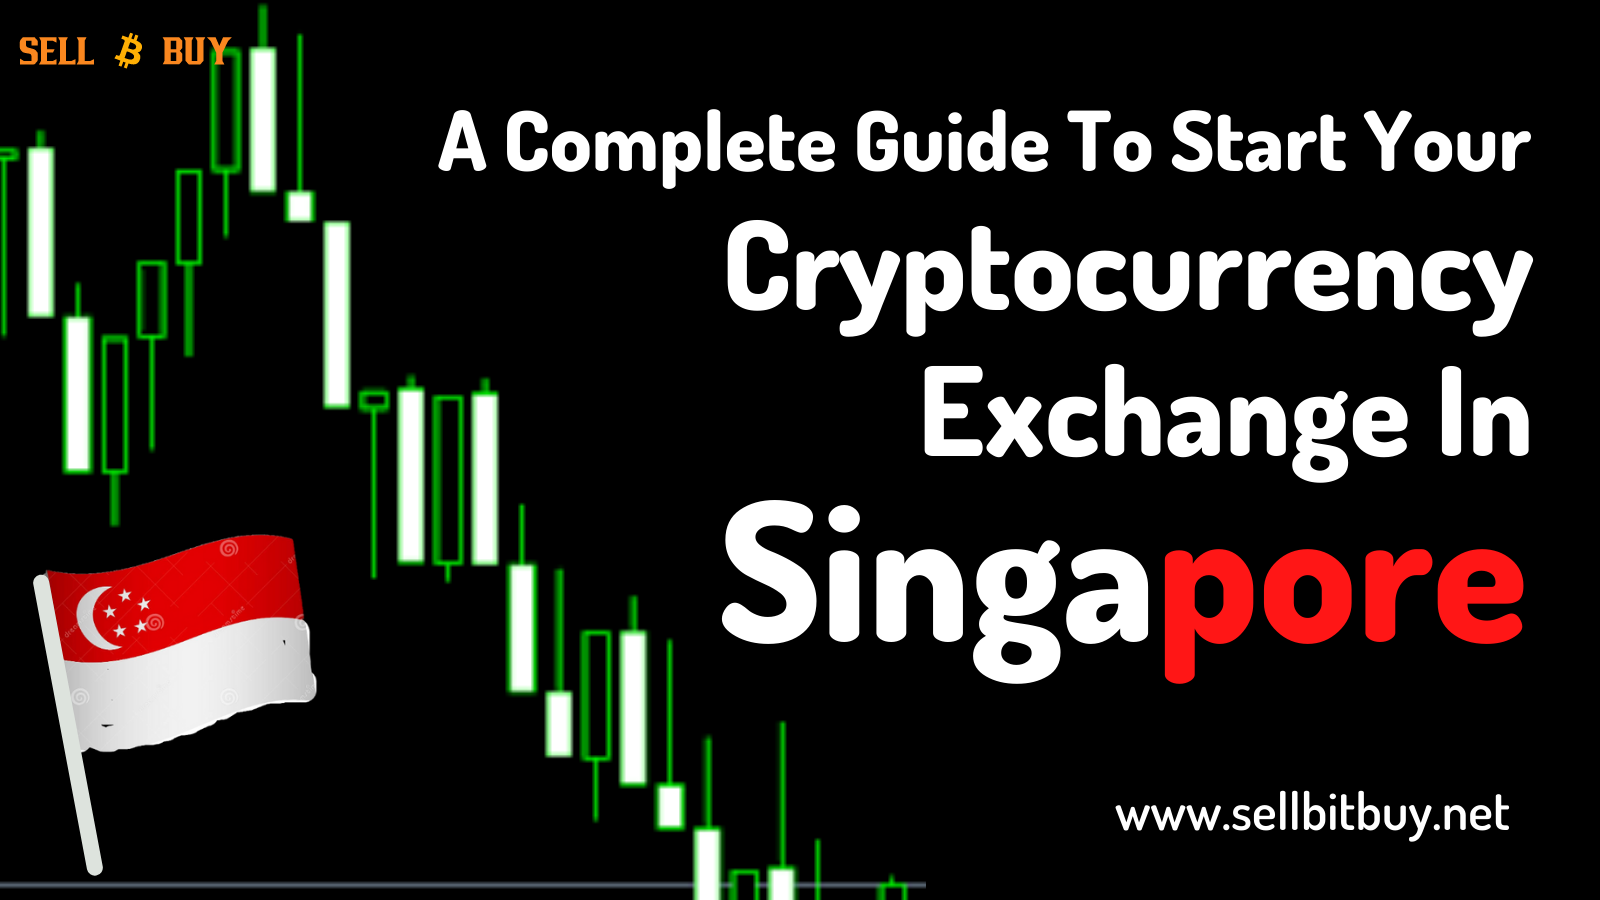 A Complete Guide To Start Your Cryptocurrency Exchange In Singapore